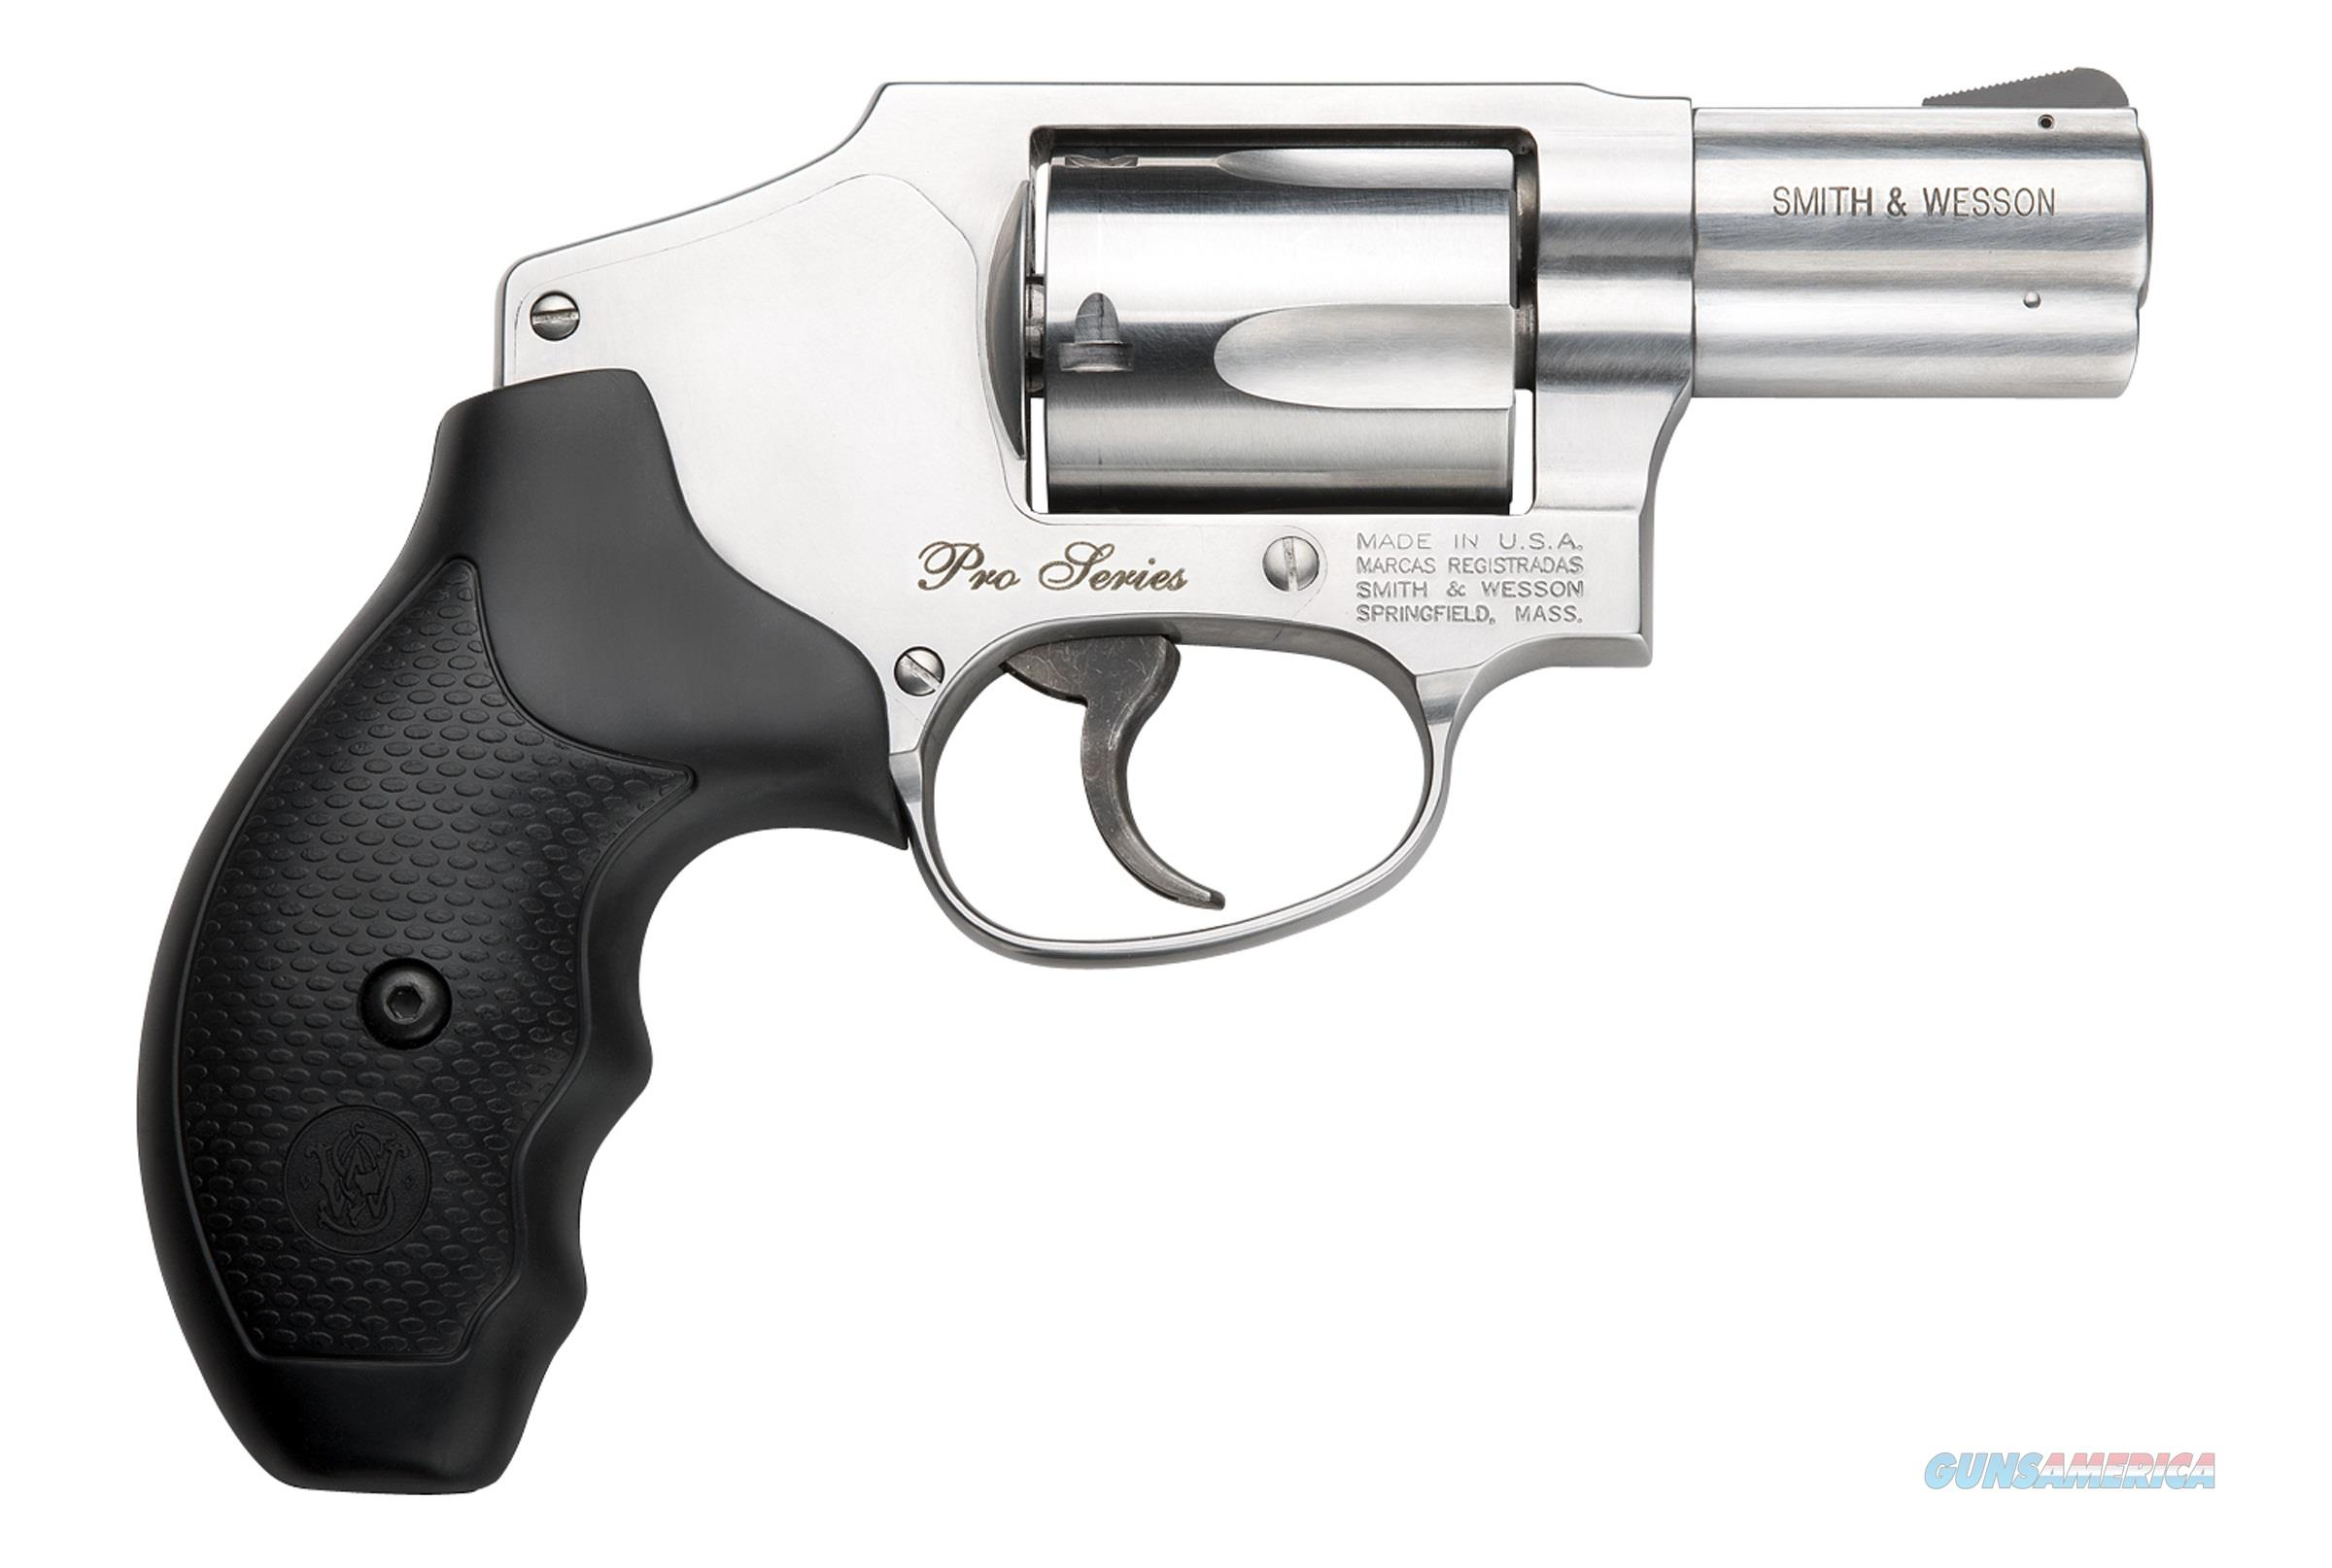 Smith and Wesson 640 357MAG 2-1/8 MOON CLPS 178043 CUT FOR FULL MOON CLIPS  Guns > Pistols > S Misc Pistols